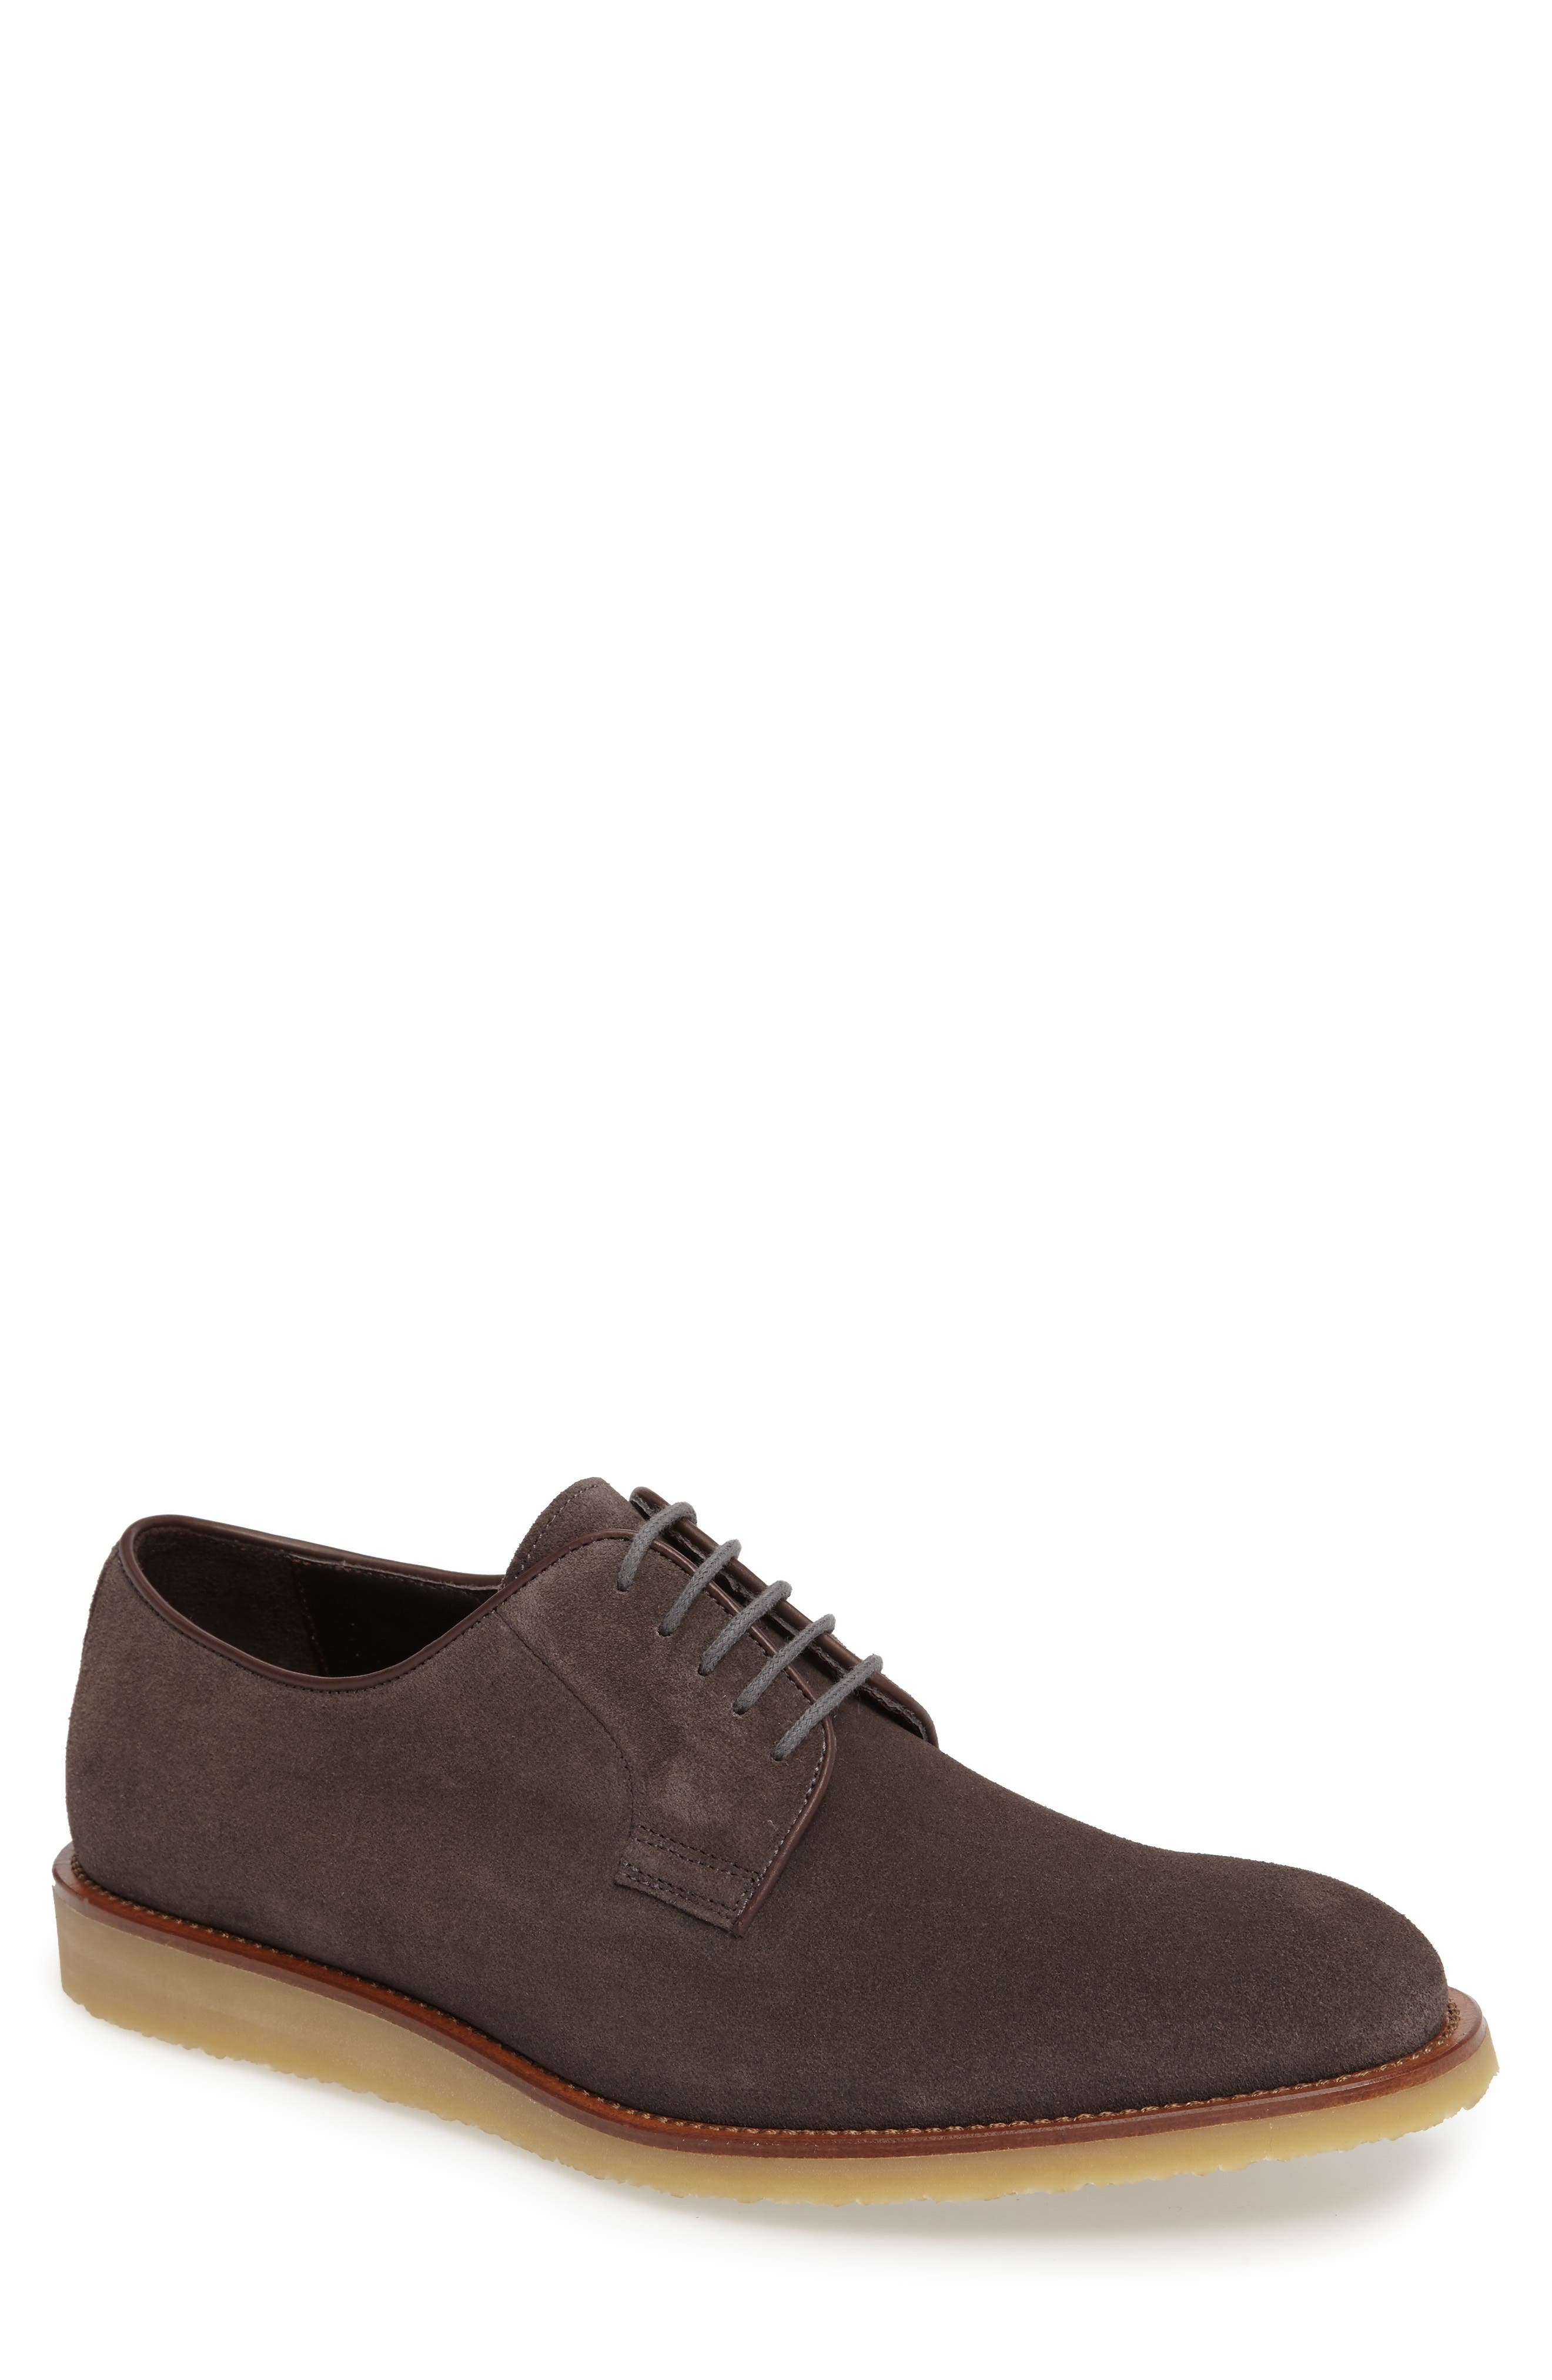 Jack Buck Shoe,                         Main,                         color, 033